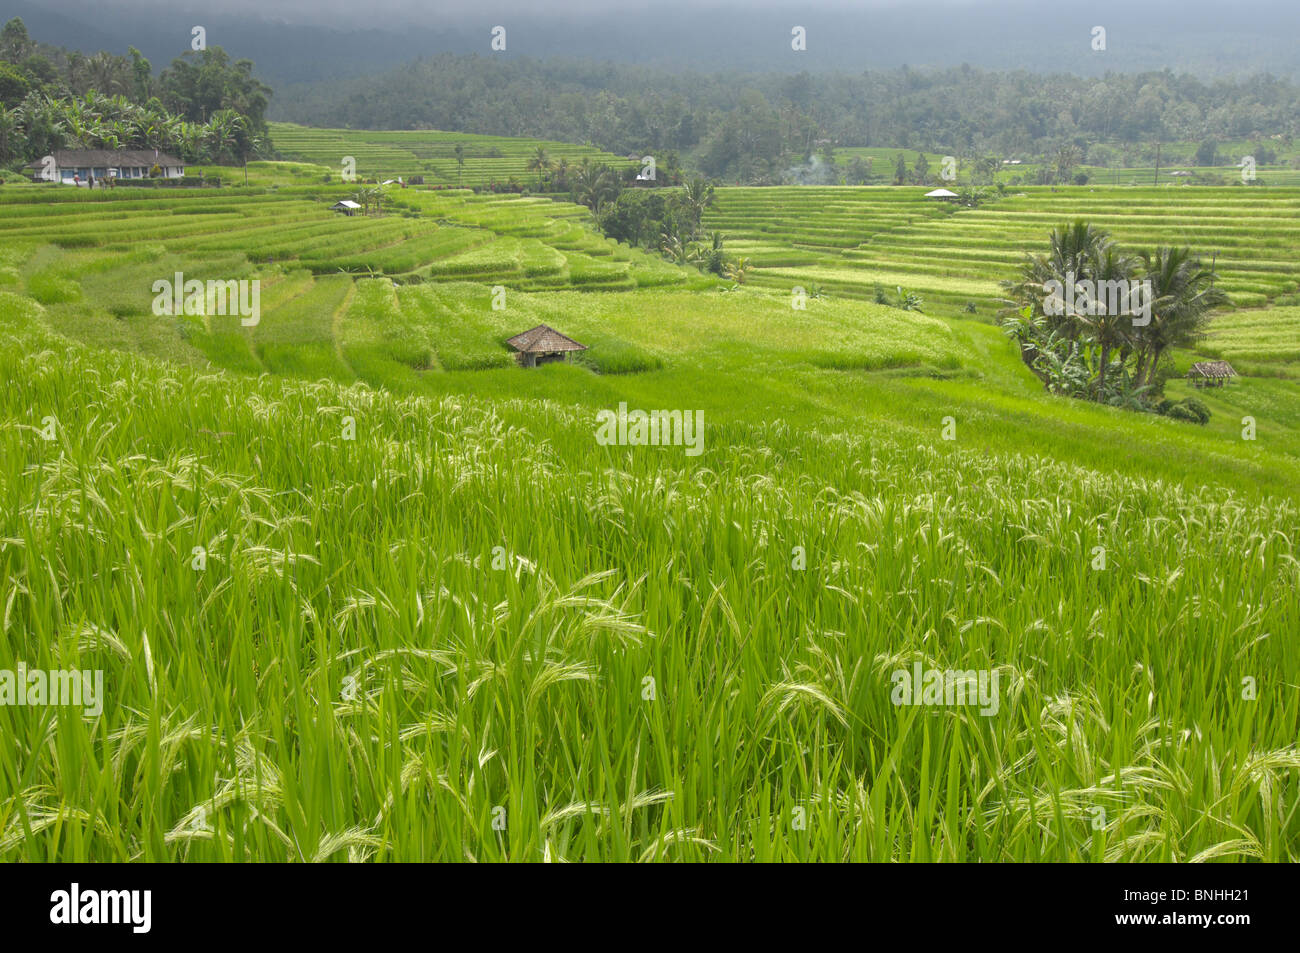 Bali Asia Indonesia travel Location Terrace Fields near Batukau Reserve rice fields agriculture paddy fields terraces - Stock Image